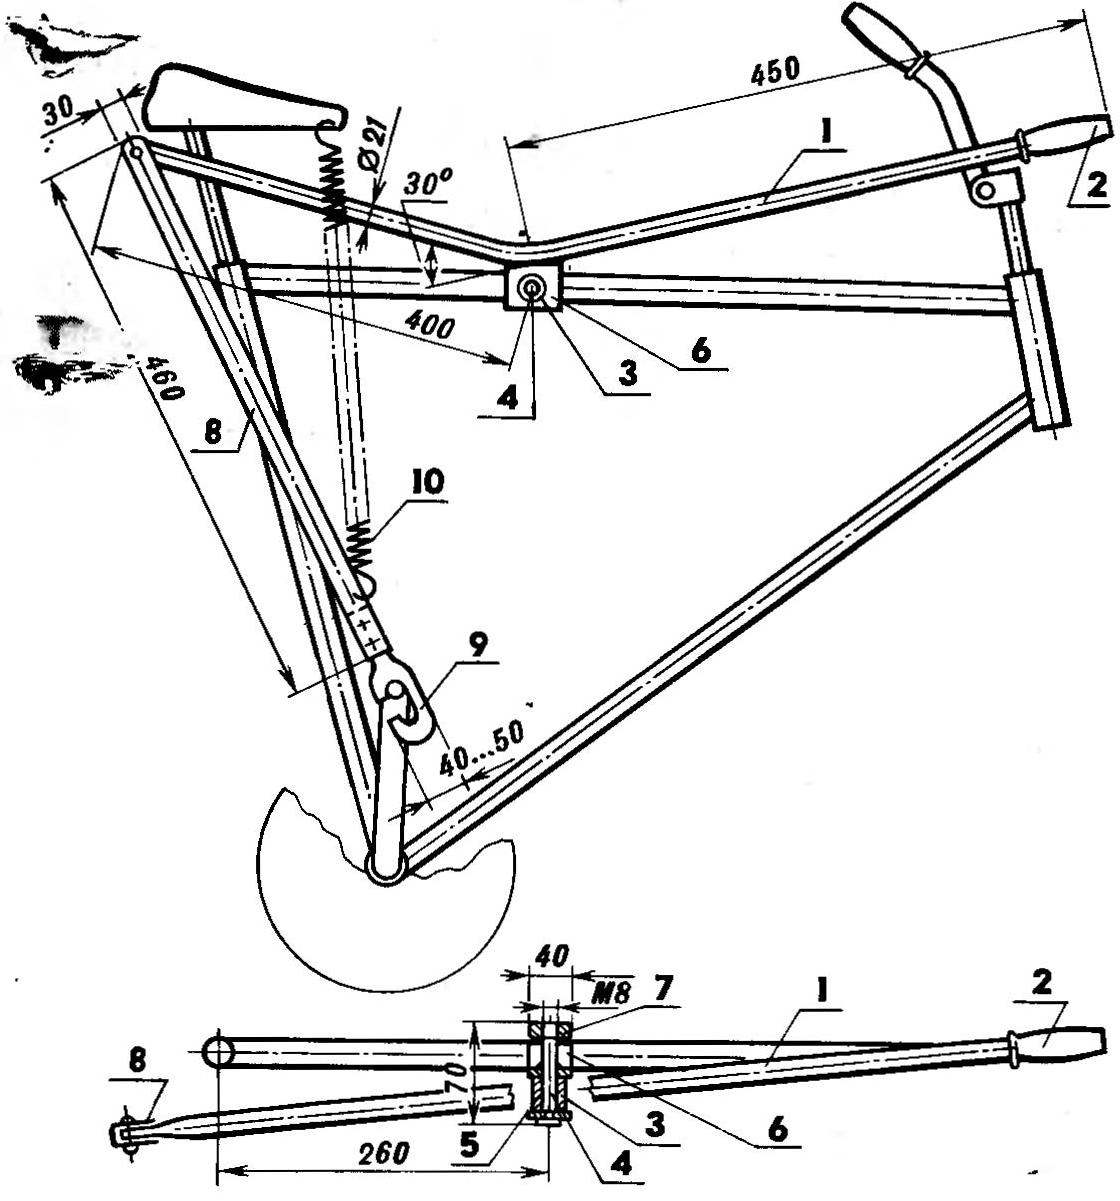 Fig. 1. Manual drive for a Bicycle